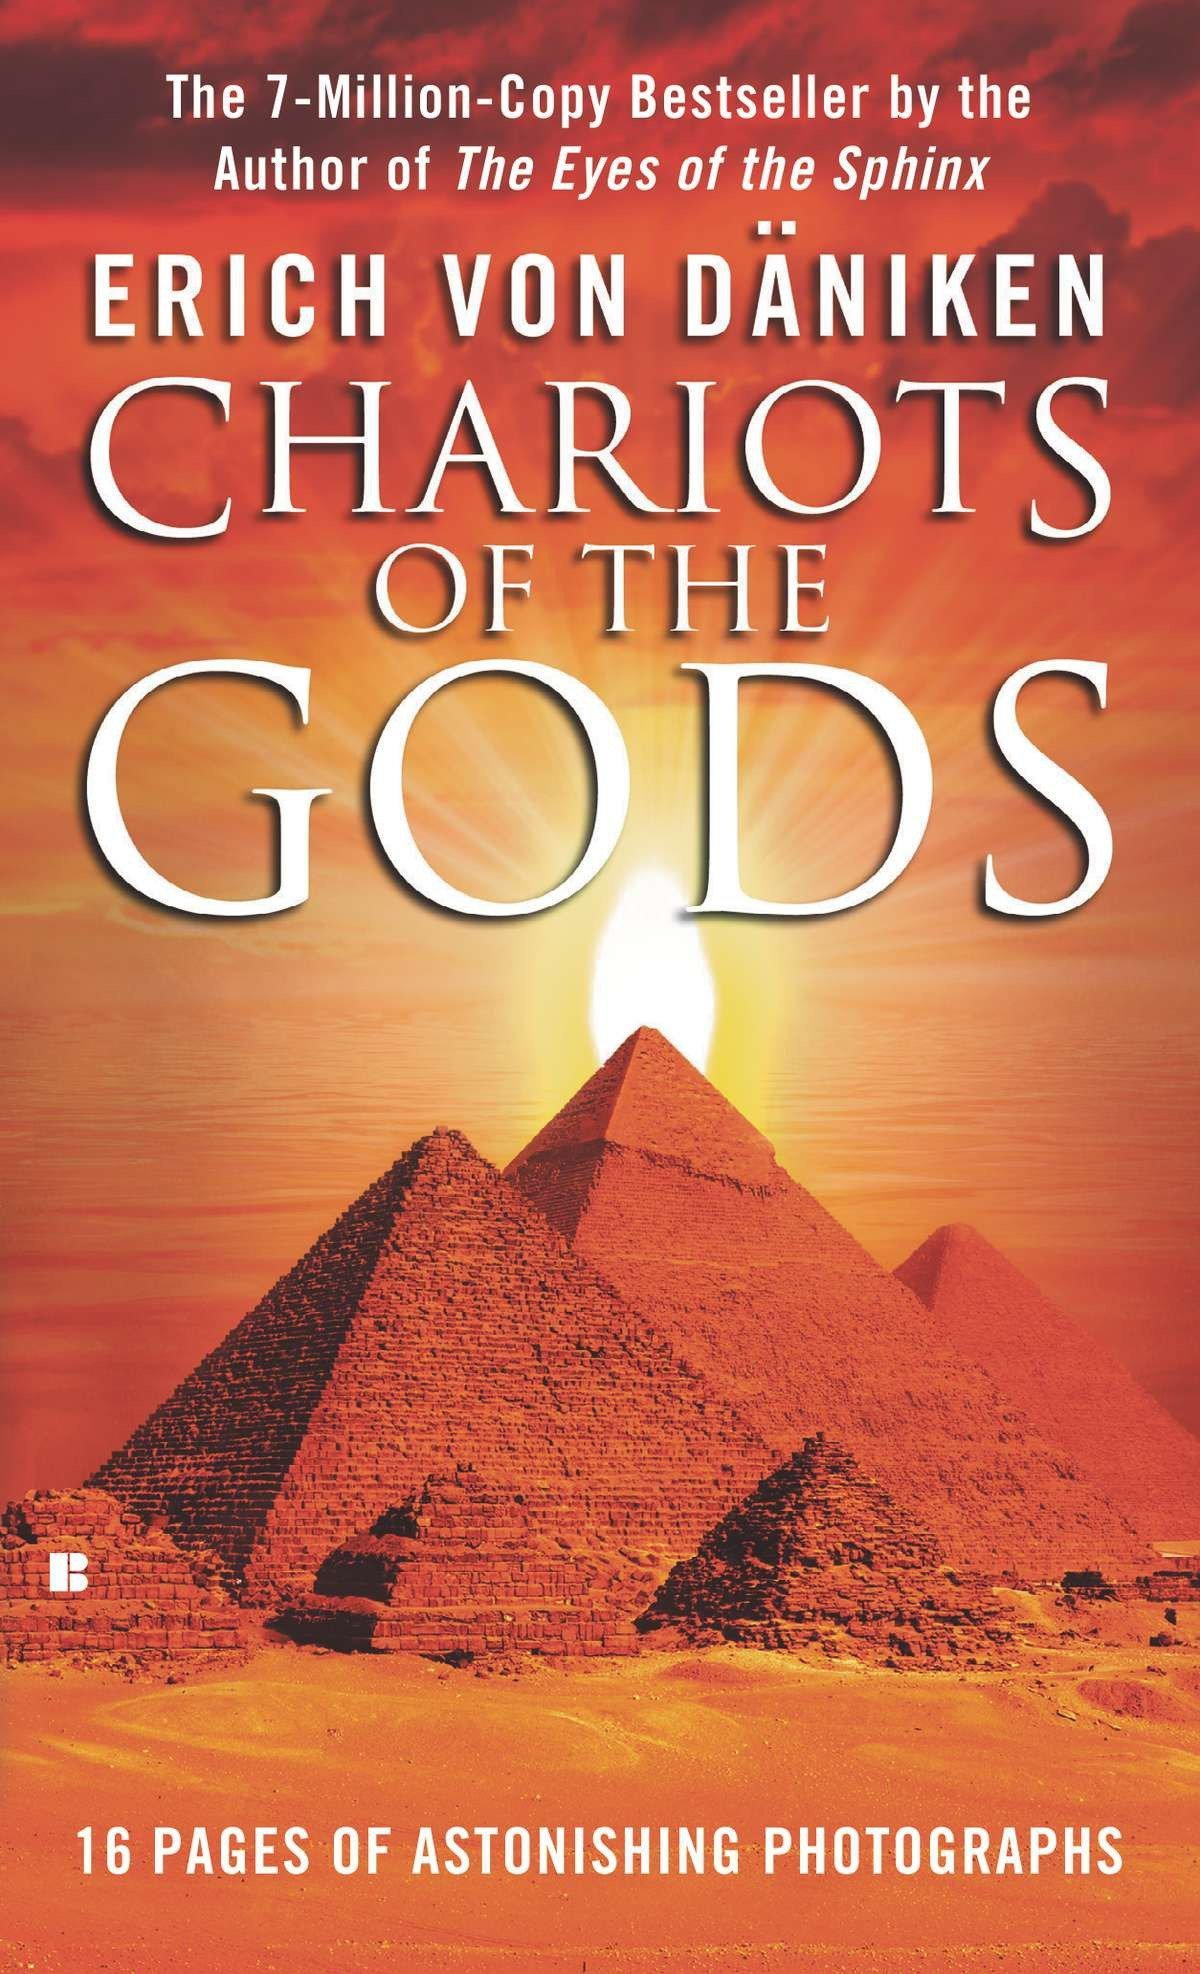 Chariots of the Gods: Erich Von Daniken: 9780425074817: Amazon.com: Books